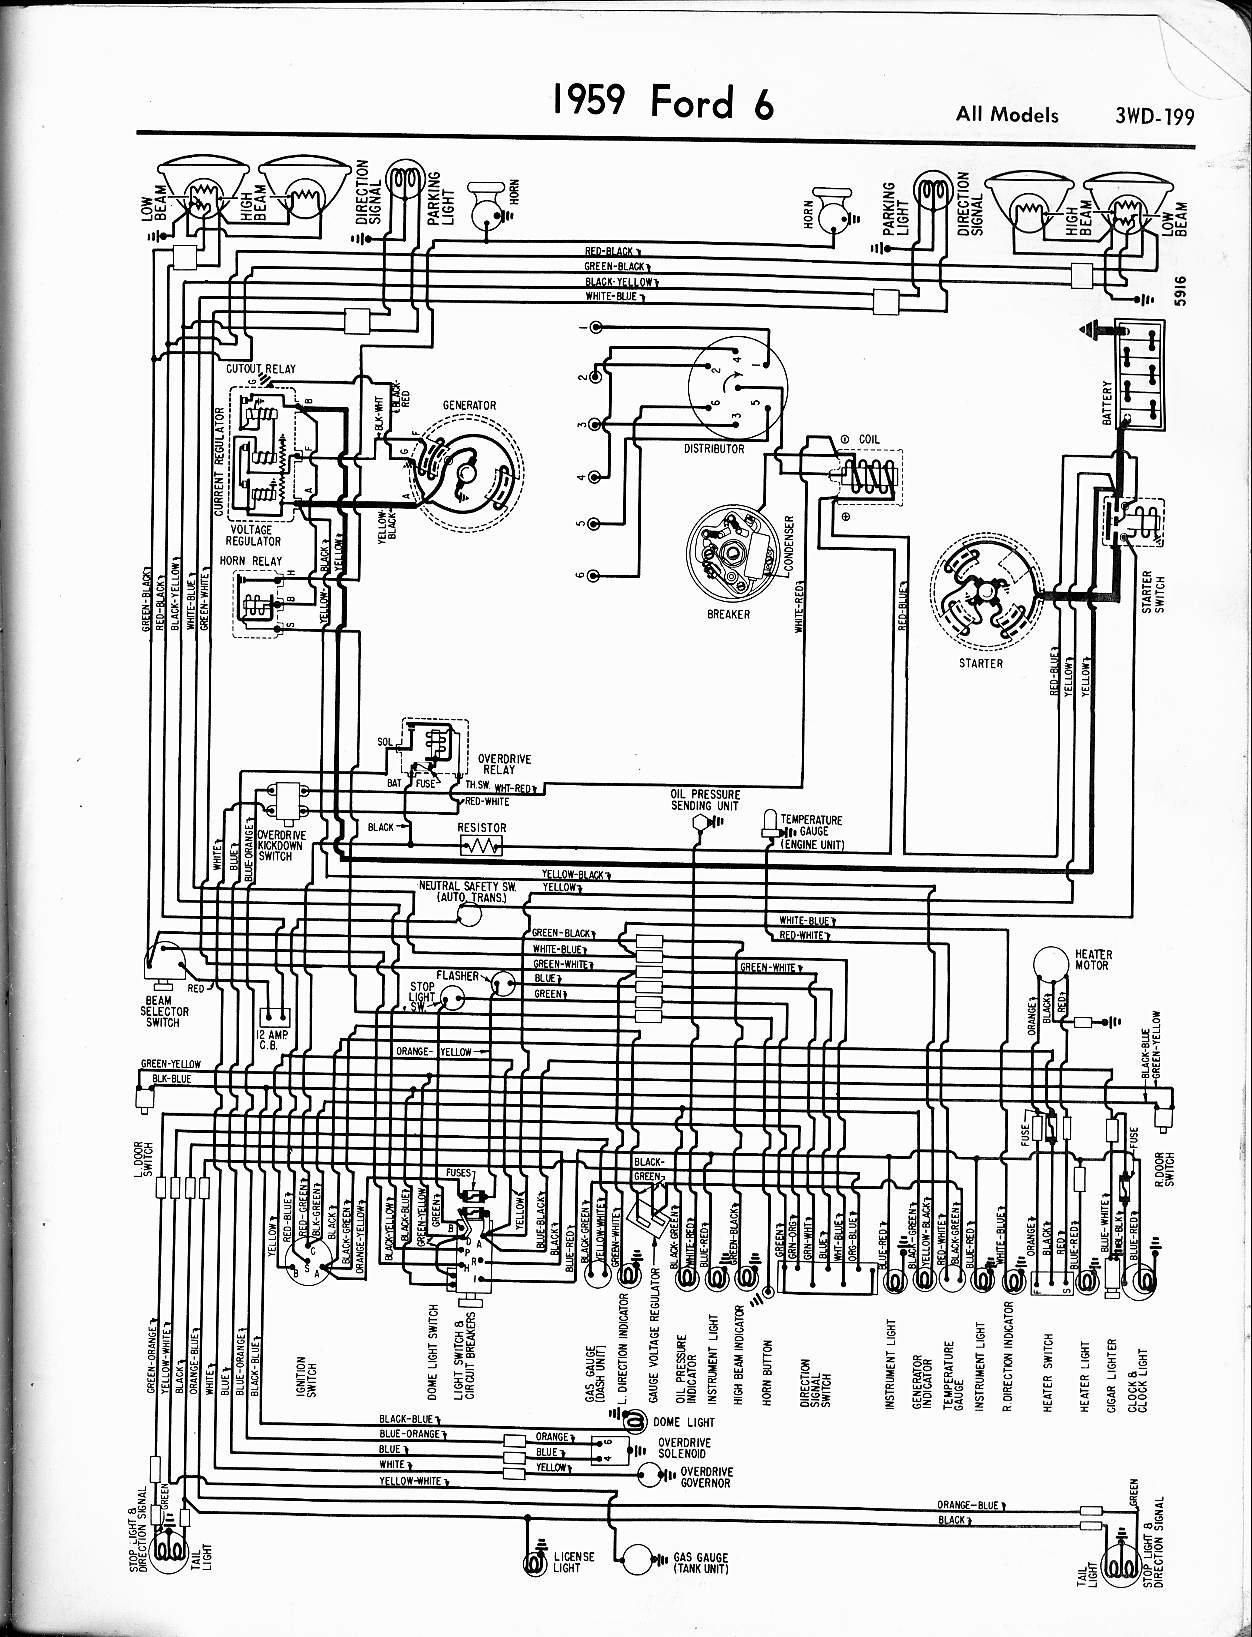 Ford 1959 Ignition Wiring - Wiring Diagram Verified Nc Wiring Diagram on